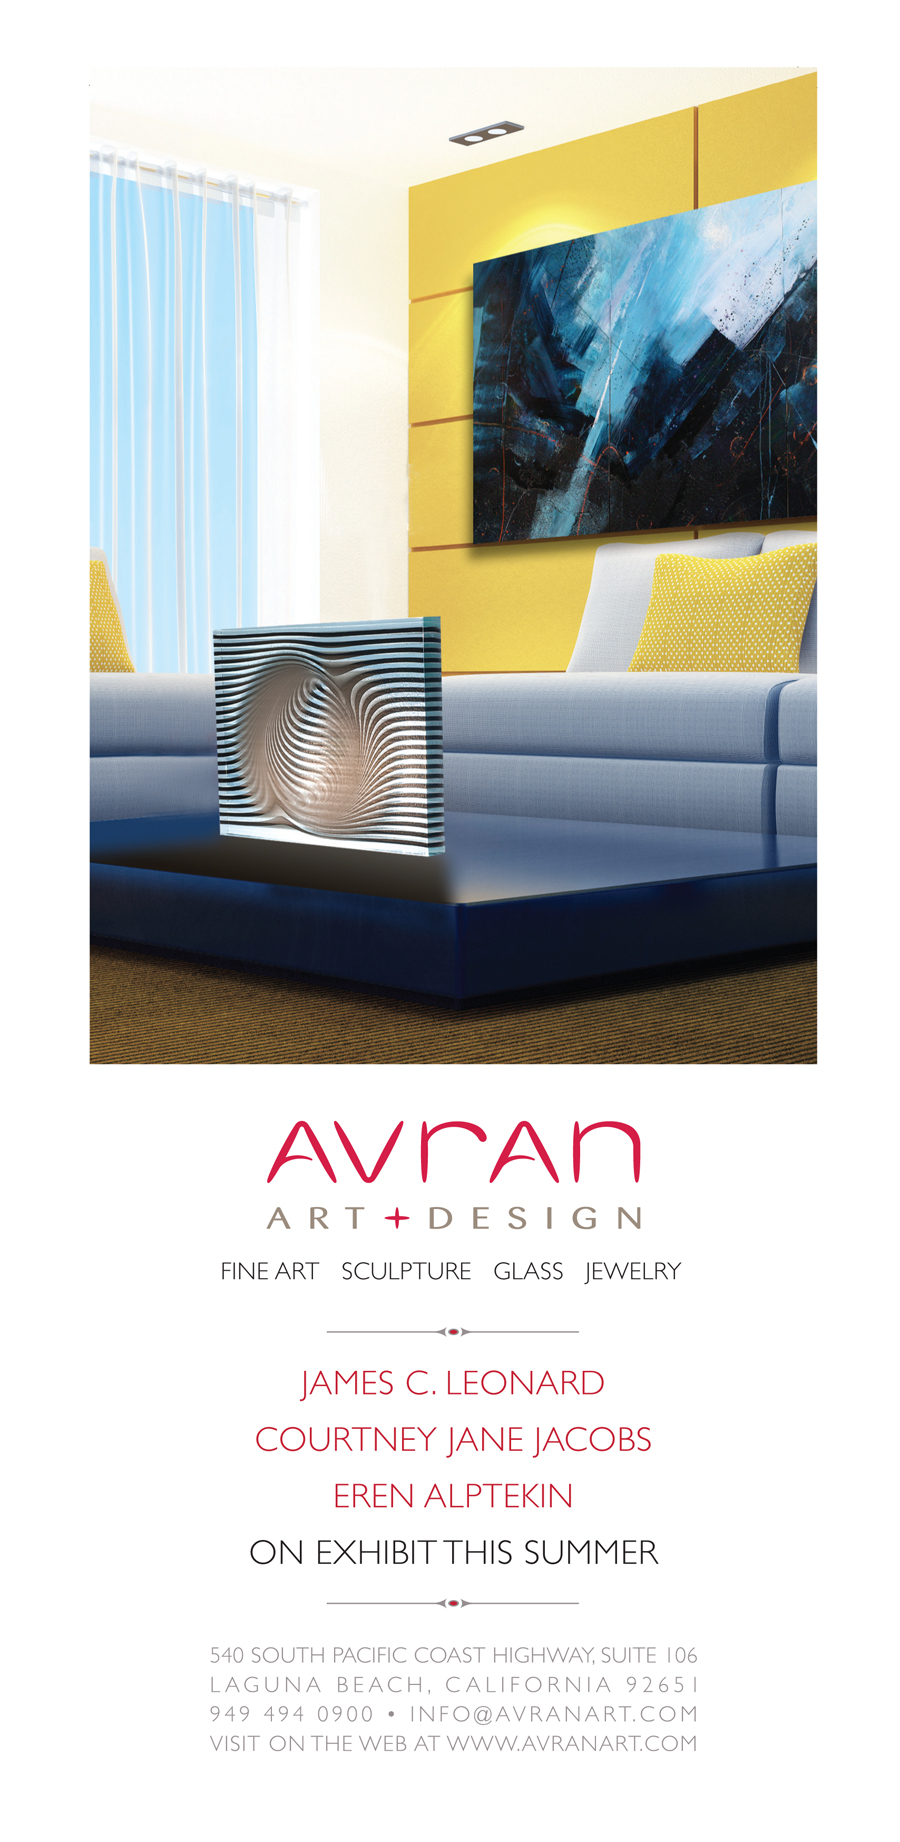 AVRAN LOCAL ARTS AD.jpg